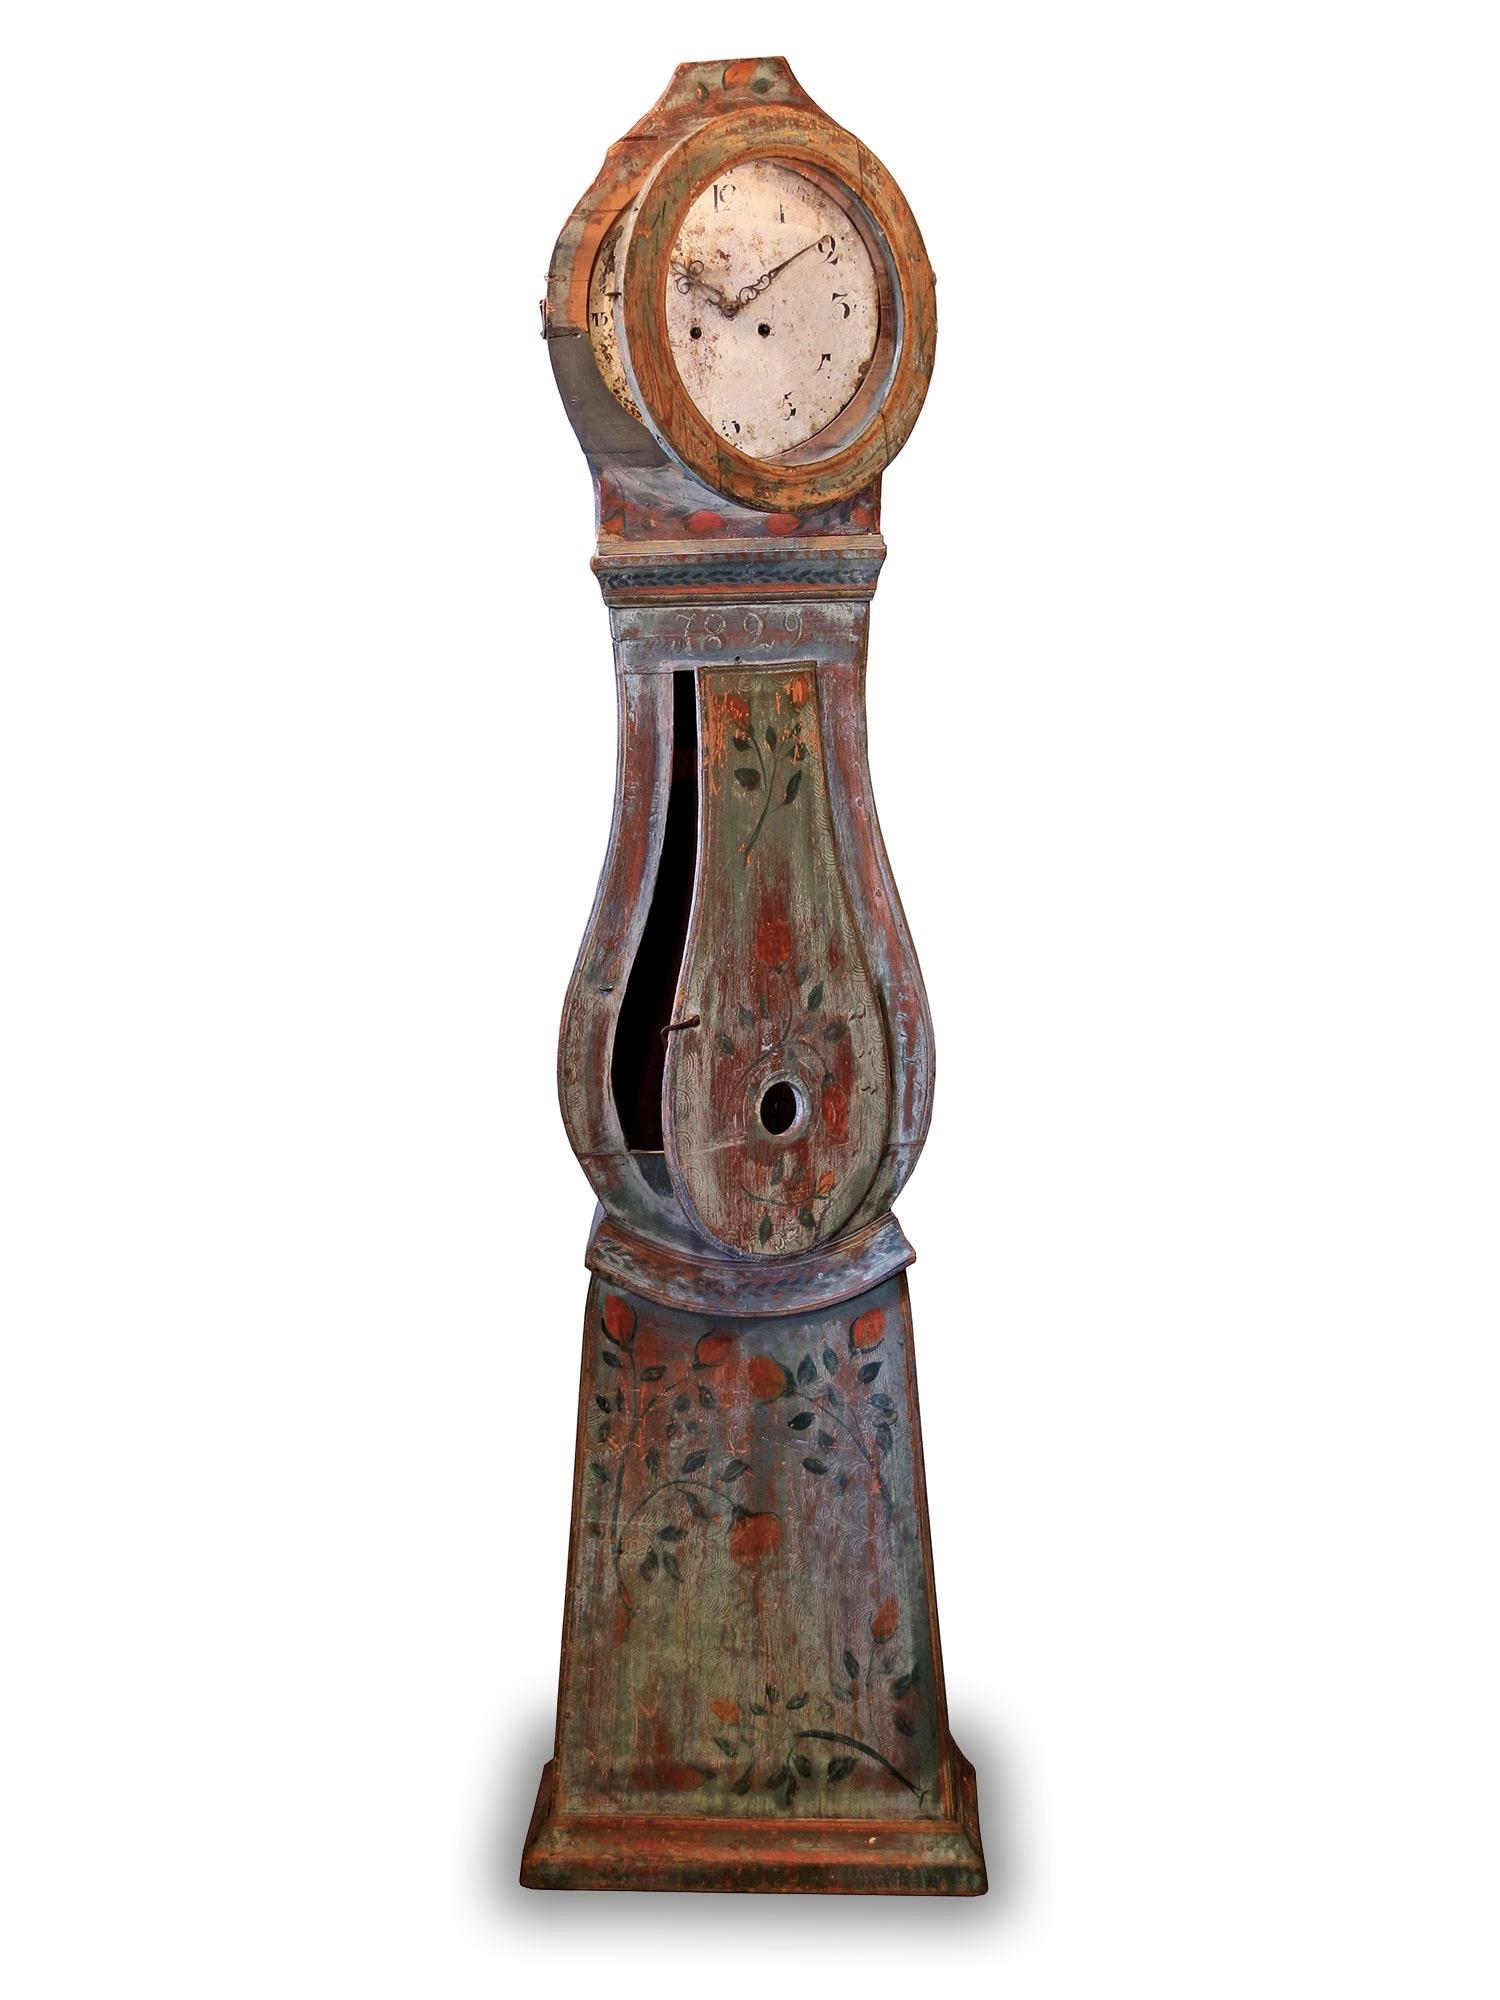 Antique Swedish Country Grandfather Clock Interior